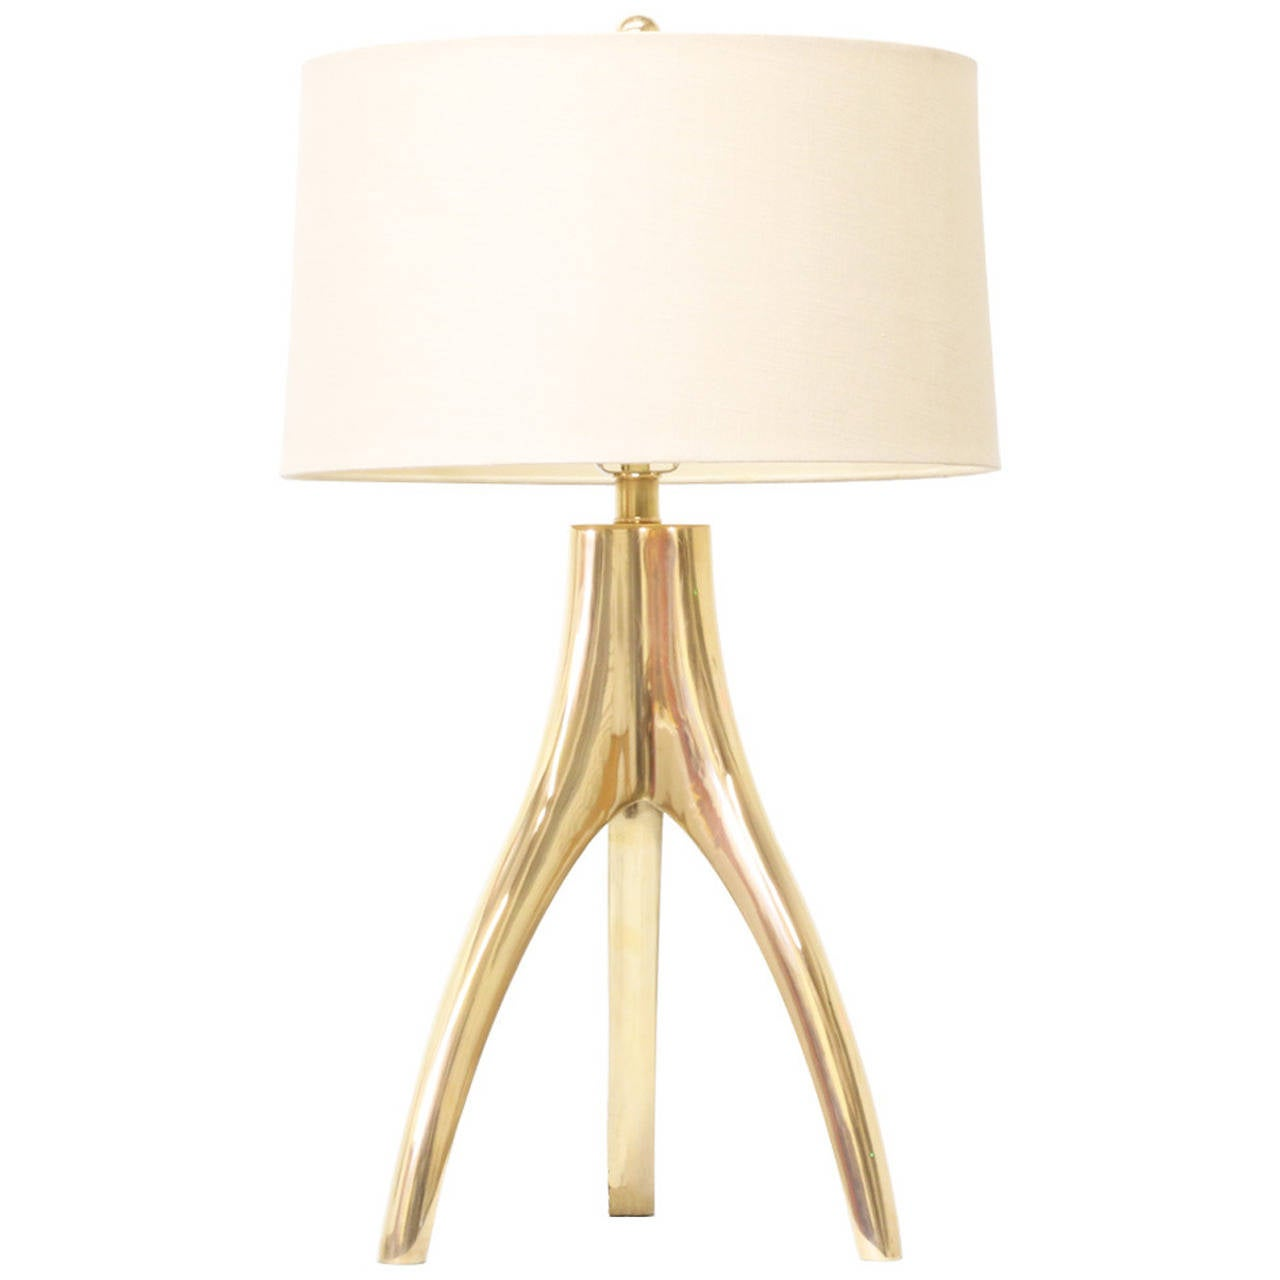 Vintage Brass Tripod Table Lamp At 1stdibs